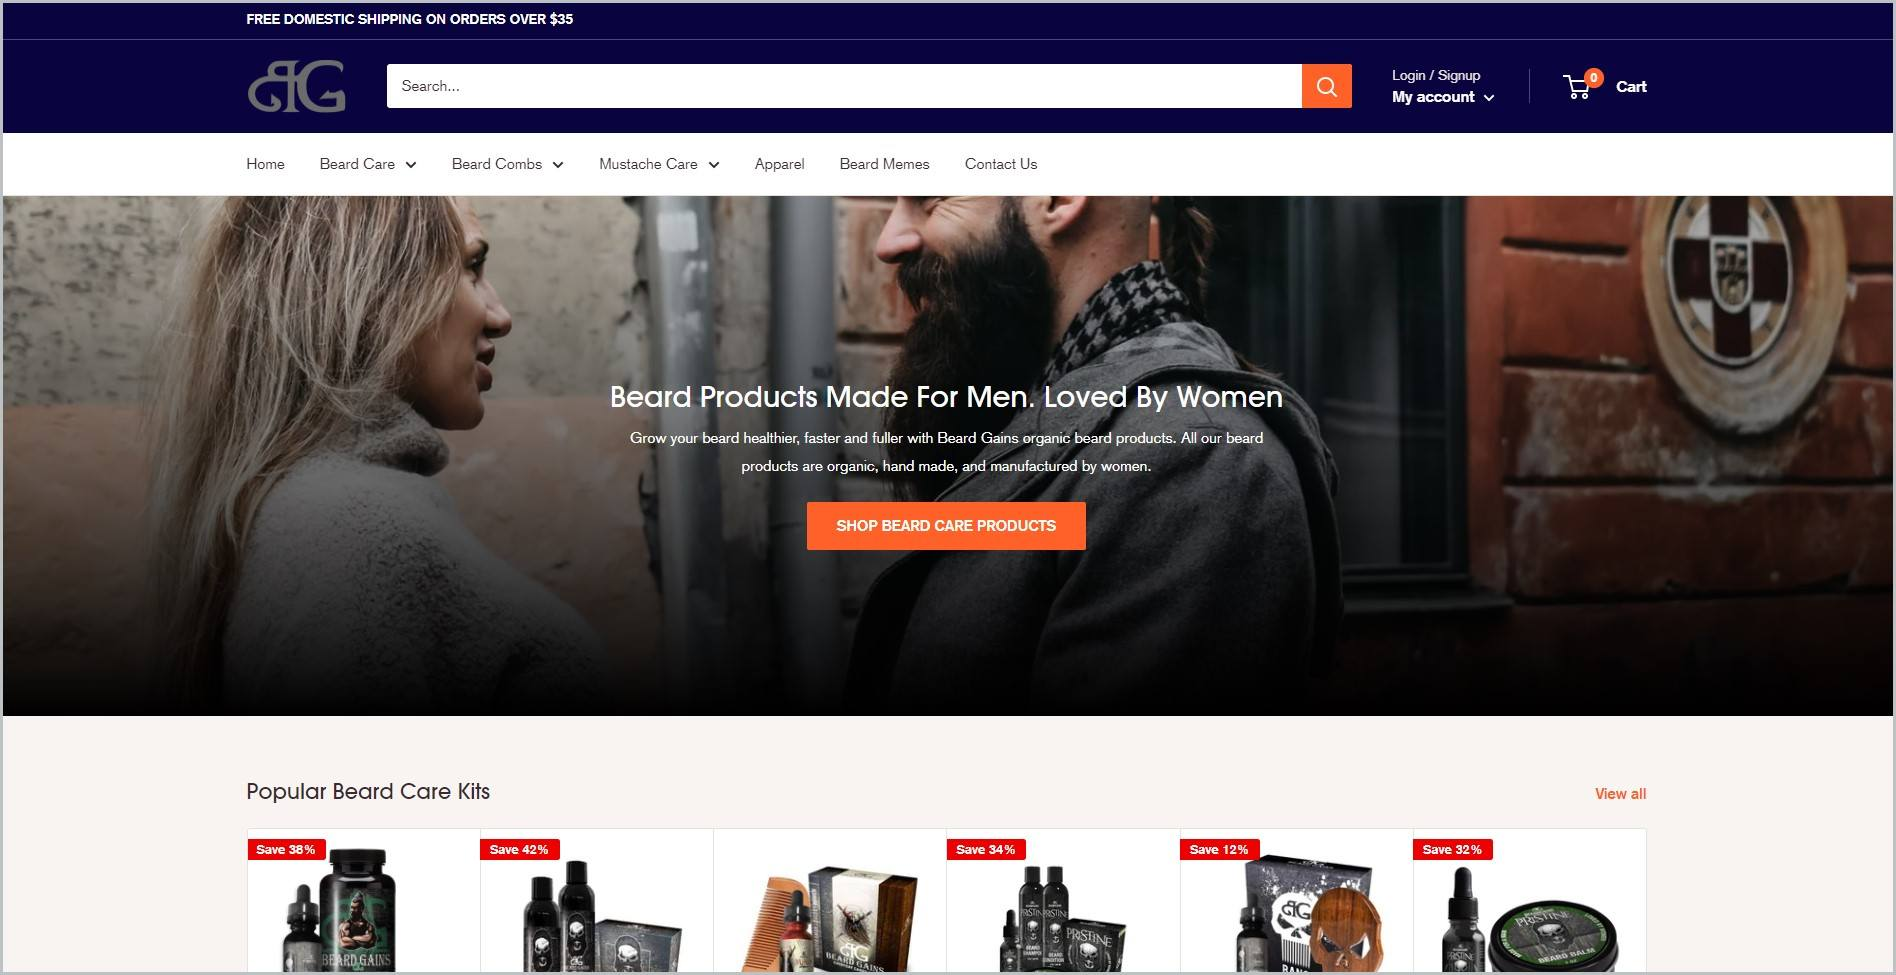 screenshot of Beard Gains homepage with the dark blue header bearing the website's name and main search bar, it showcases an image of a woman and freshly groomed bearded man and images of some of the website's products